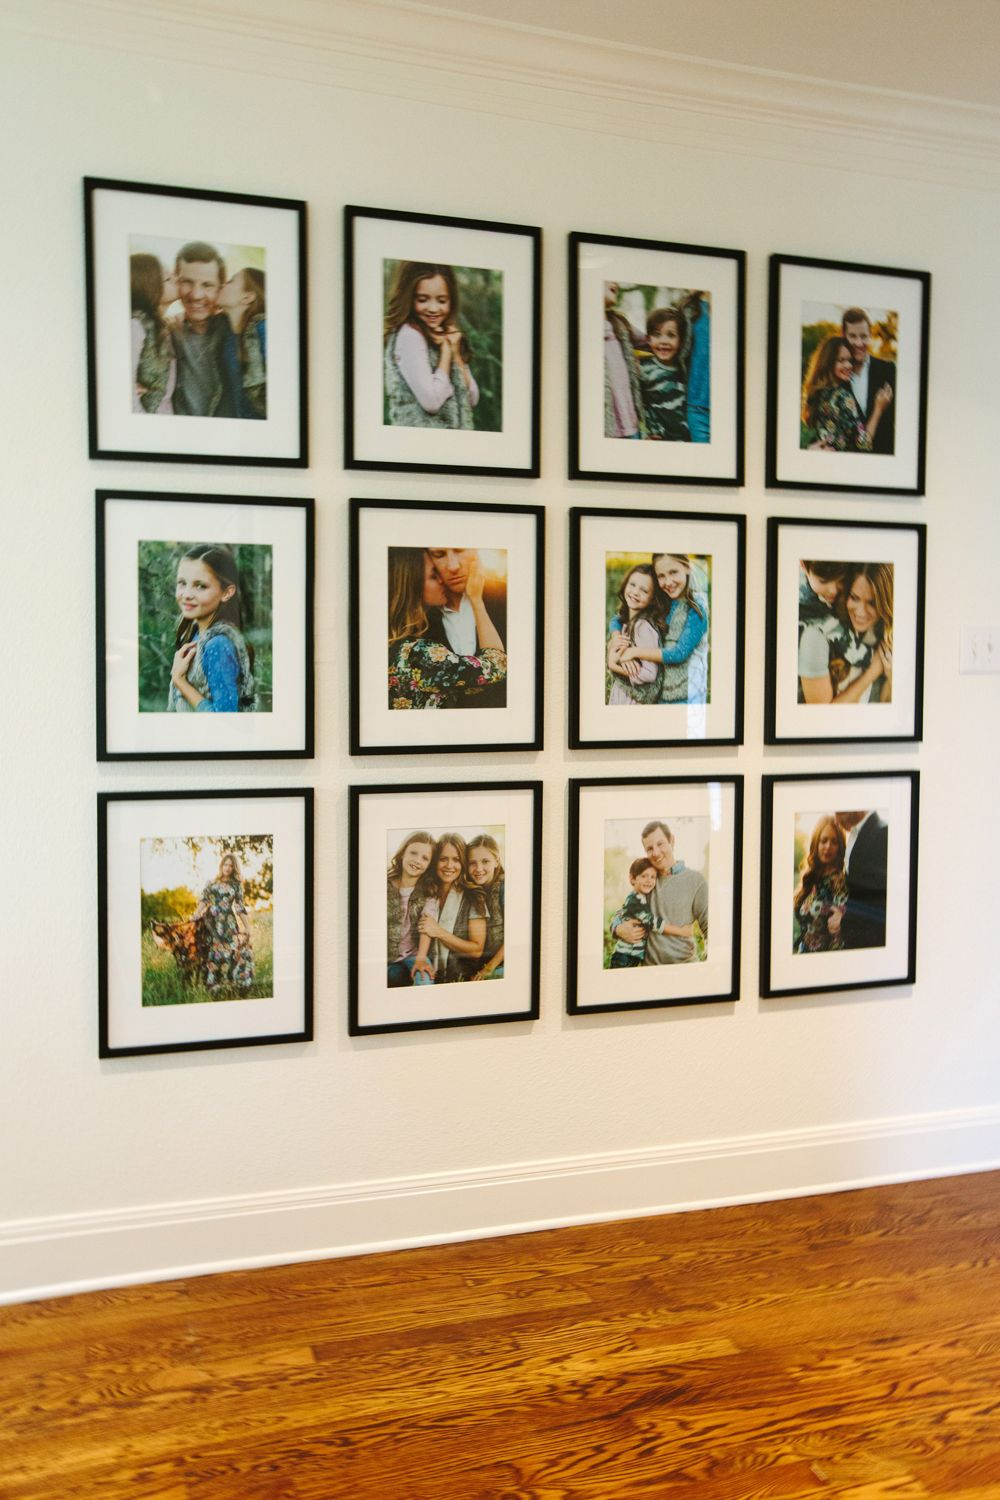 Pin by Tammy Gosselin on Raleigh Living   Family gallery wall, Family photo  wall, Wall gallery